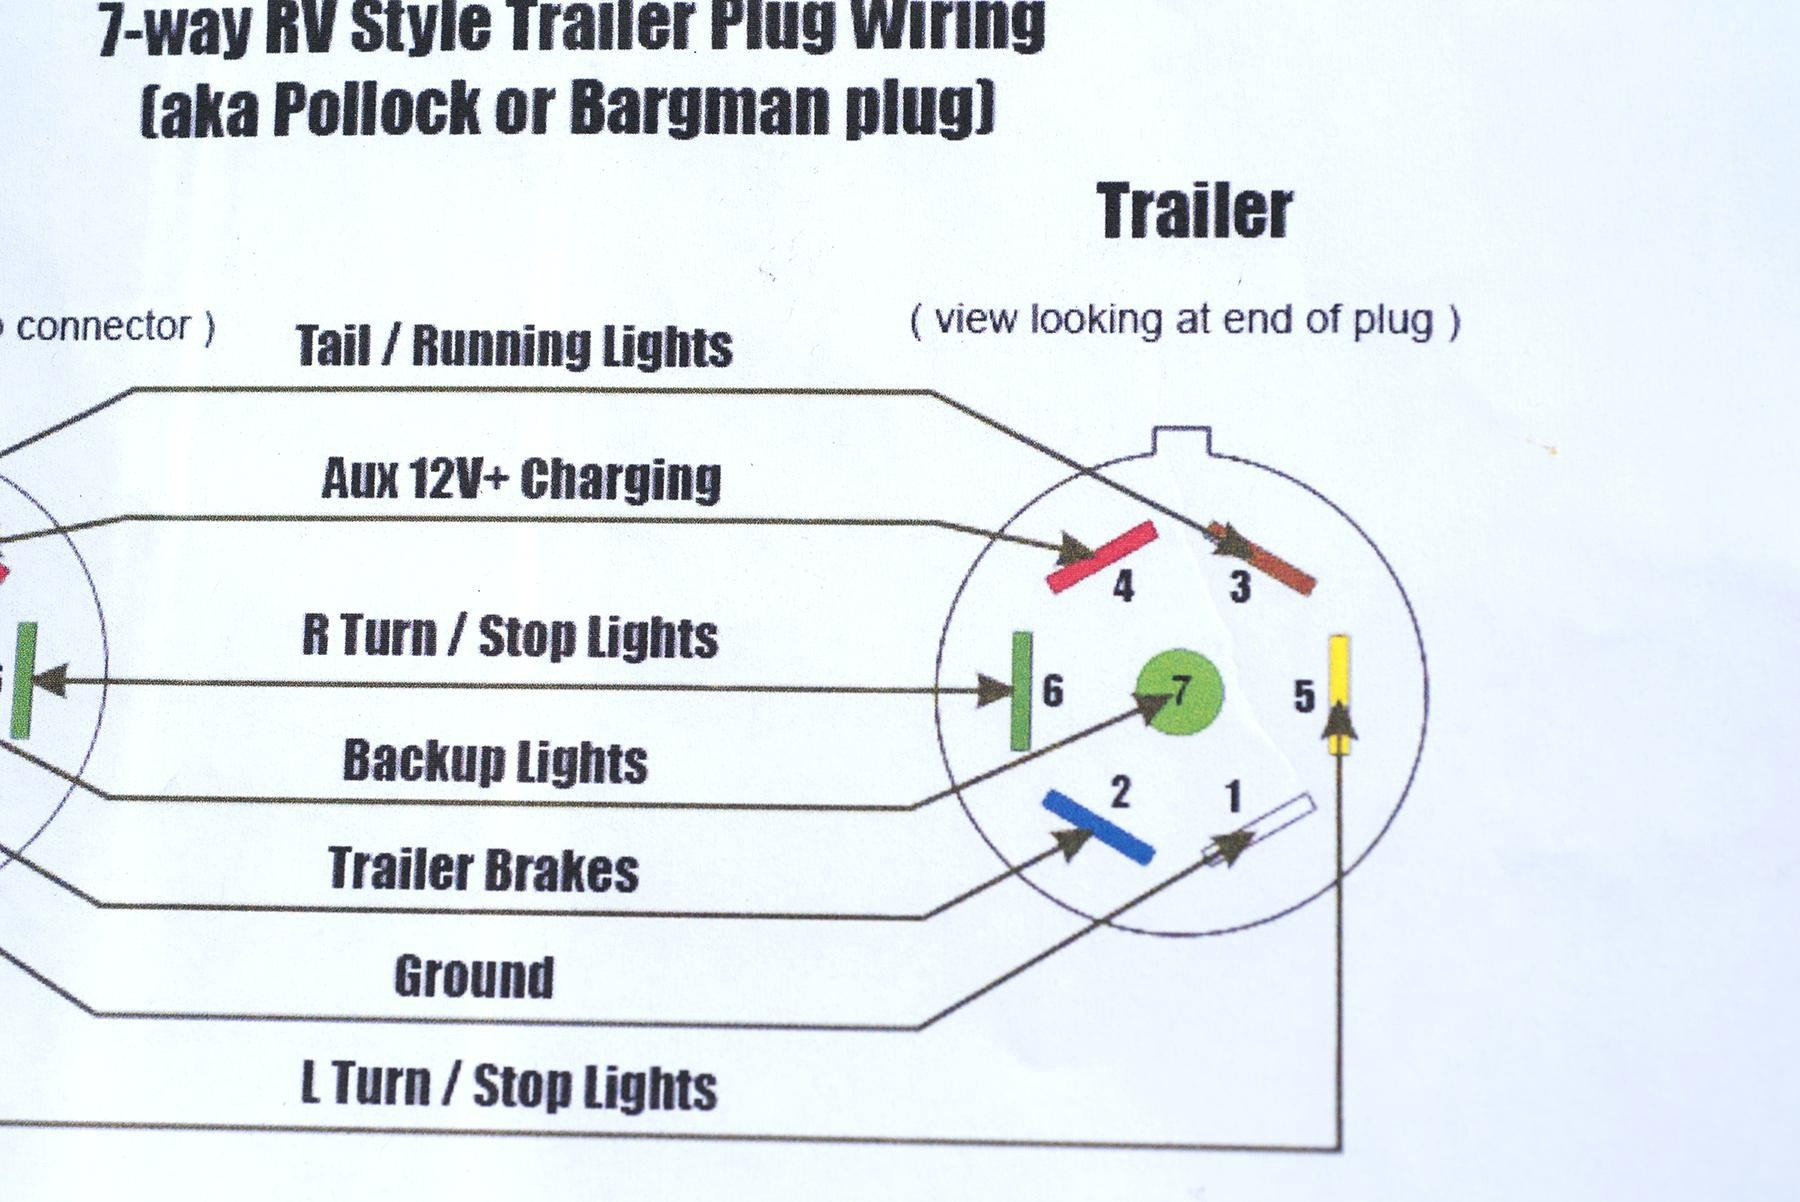 7 Way Plug Wiring Diagram Trailer | Wiring Diagram - 7 Way Trailer Plug Wiring Diagram Dodge